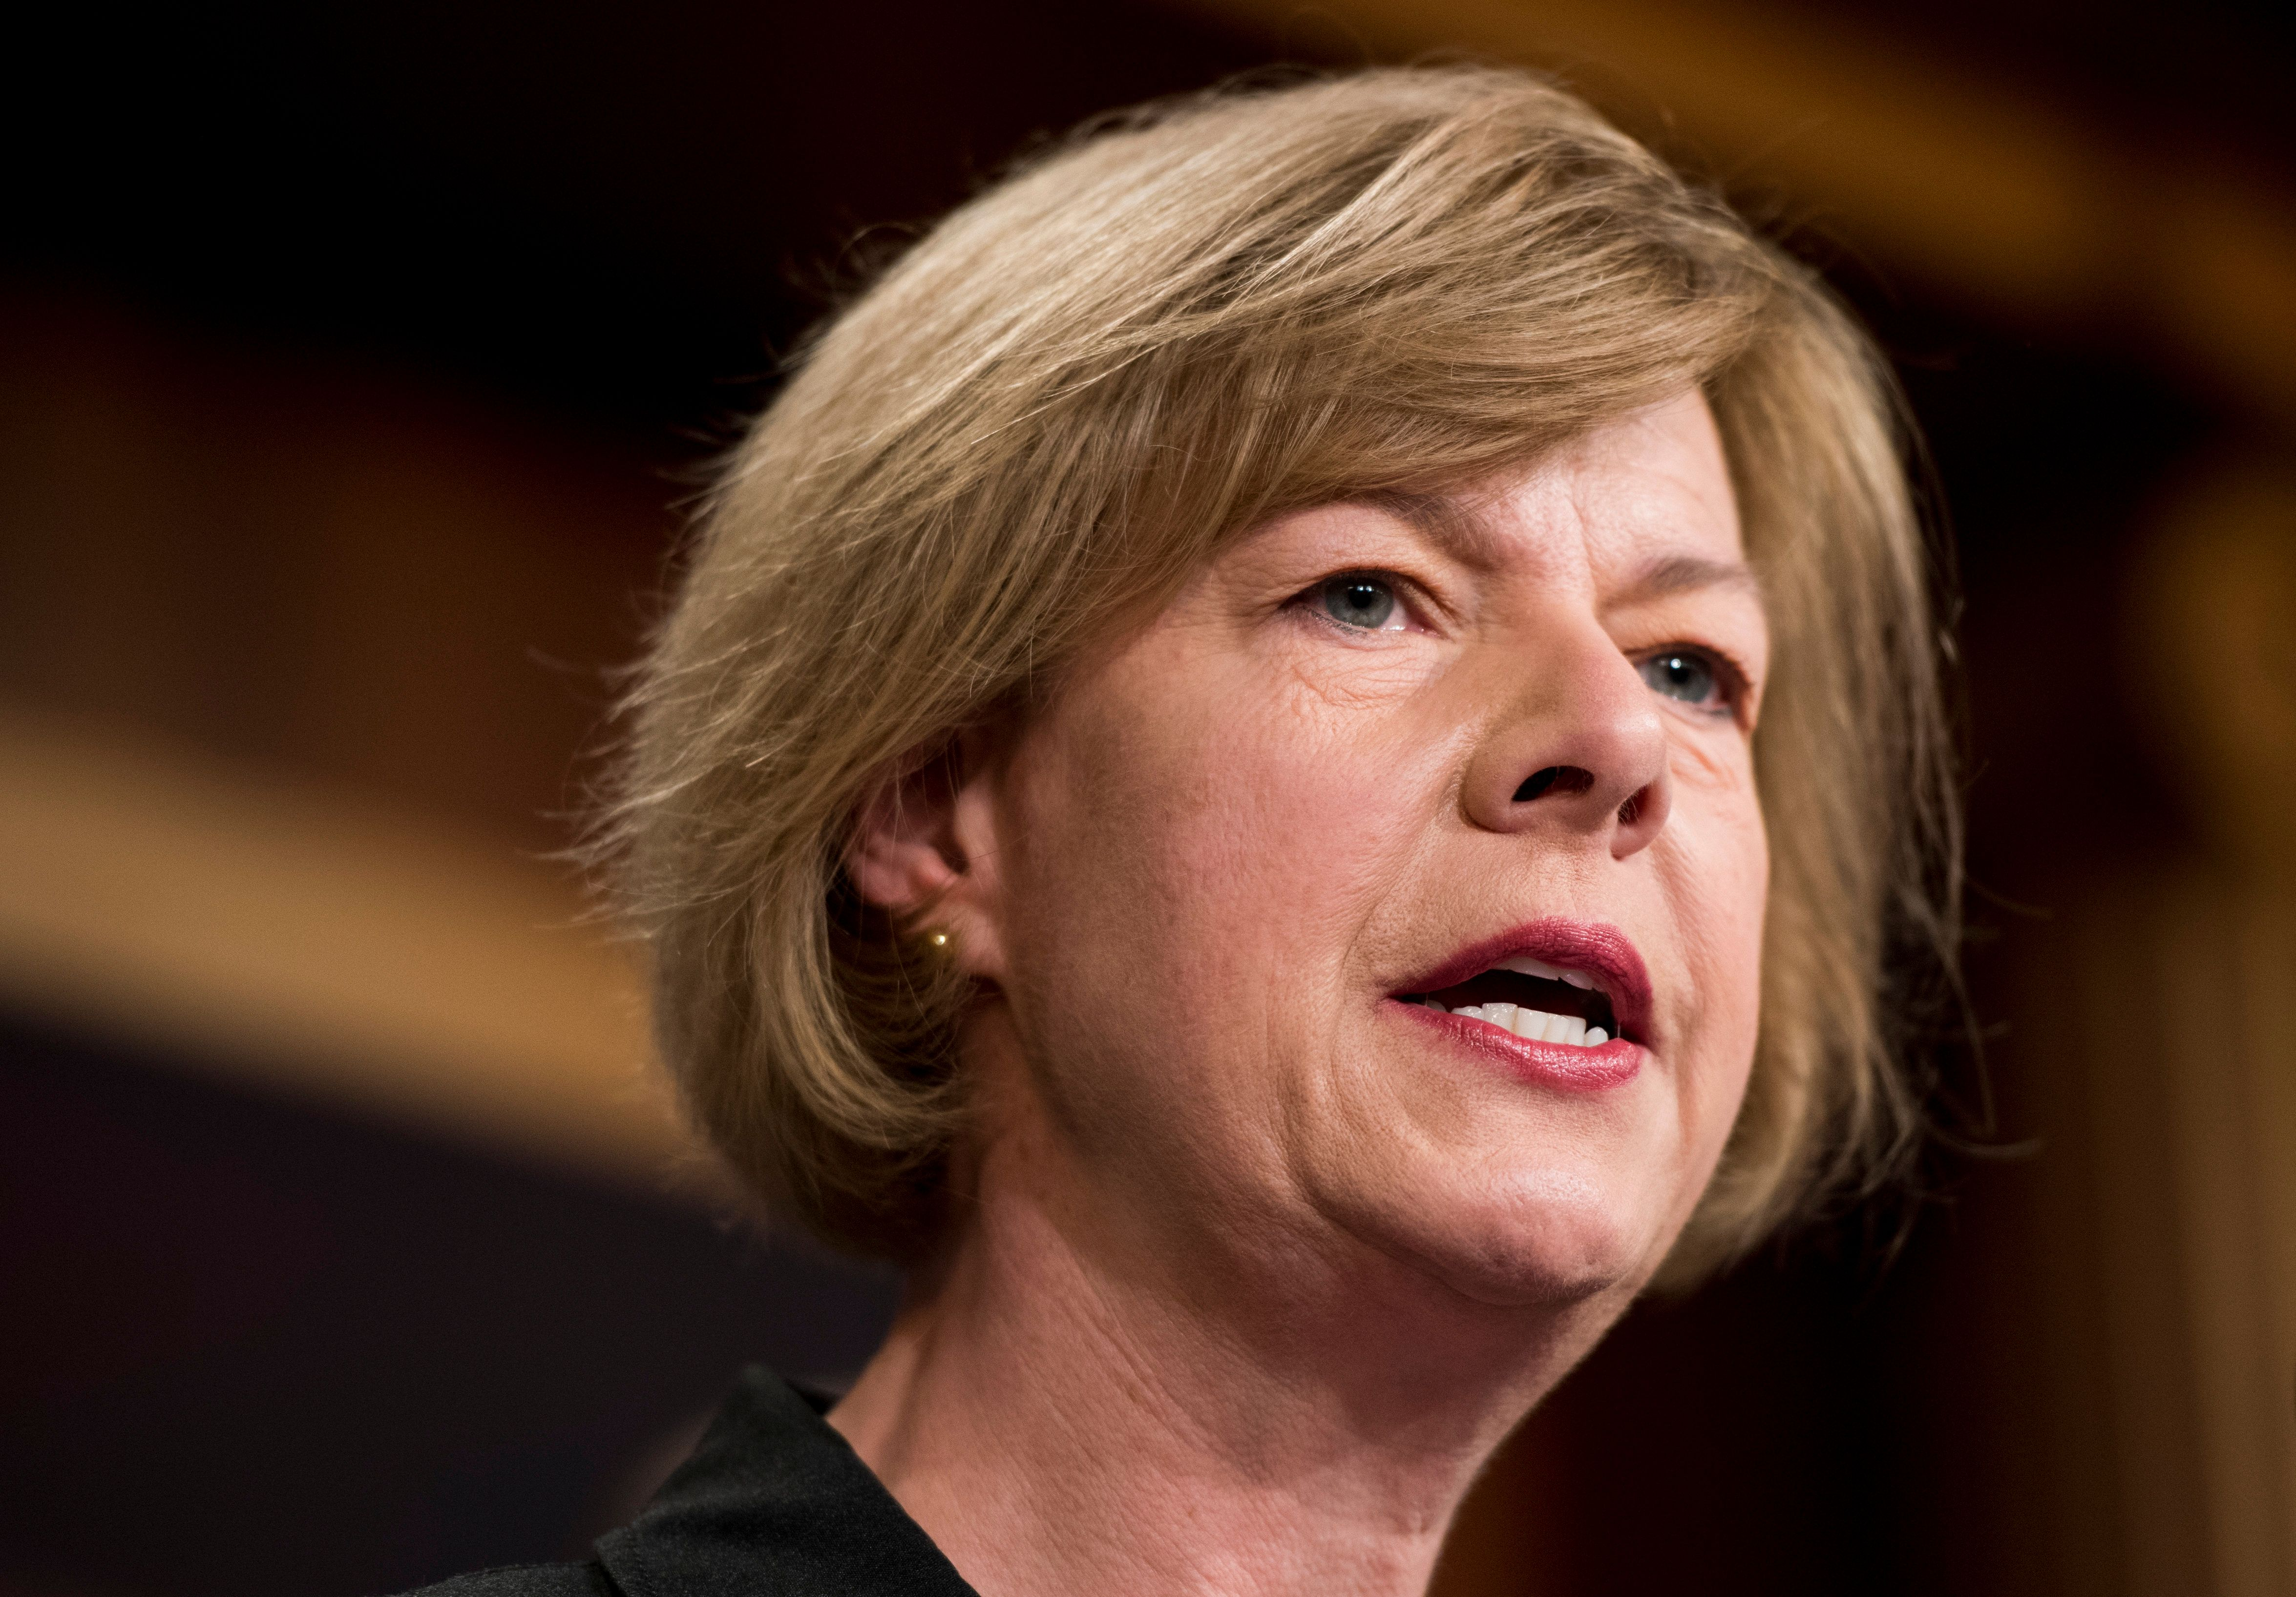 UNITED STATES - MAY 16: Sen. Tammy Baldwin, D-Wisc., speaks during a Senate Democrats' news conference on the impact of repealing the Affordable Care Act on the opioid epidemic on Tuesday, May 16, 2017. (Photo By Bill Clark/CQ Roll Call)